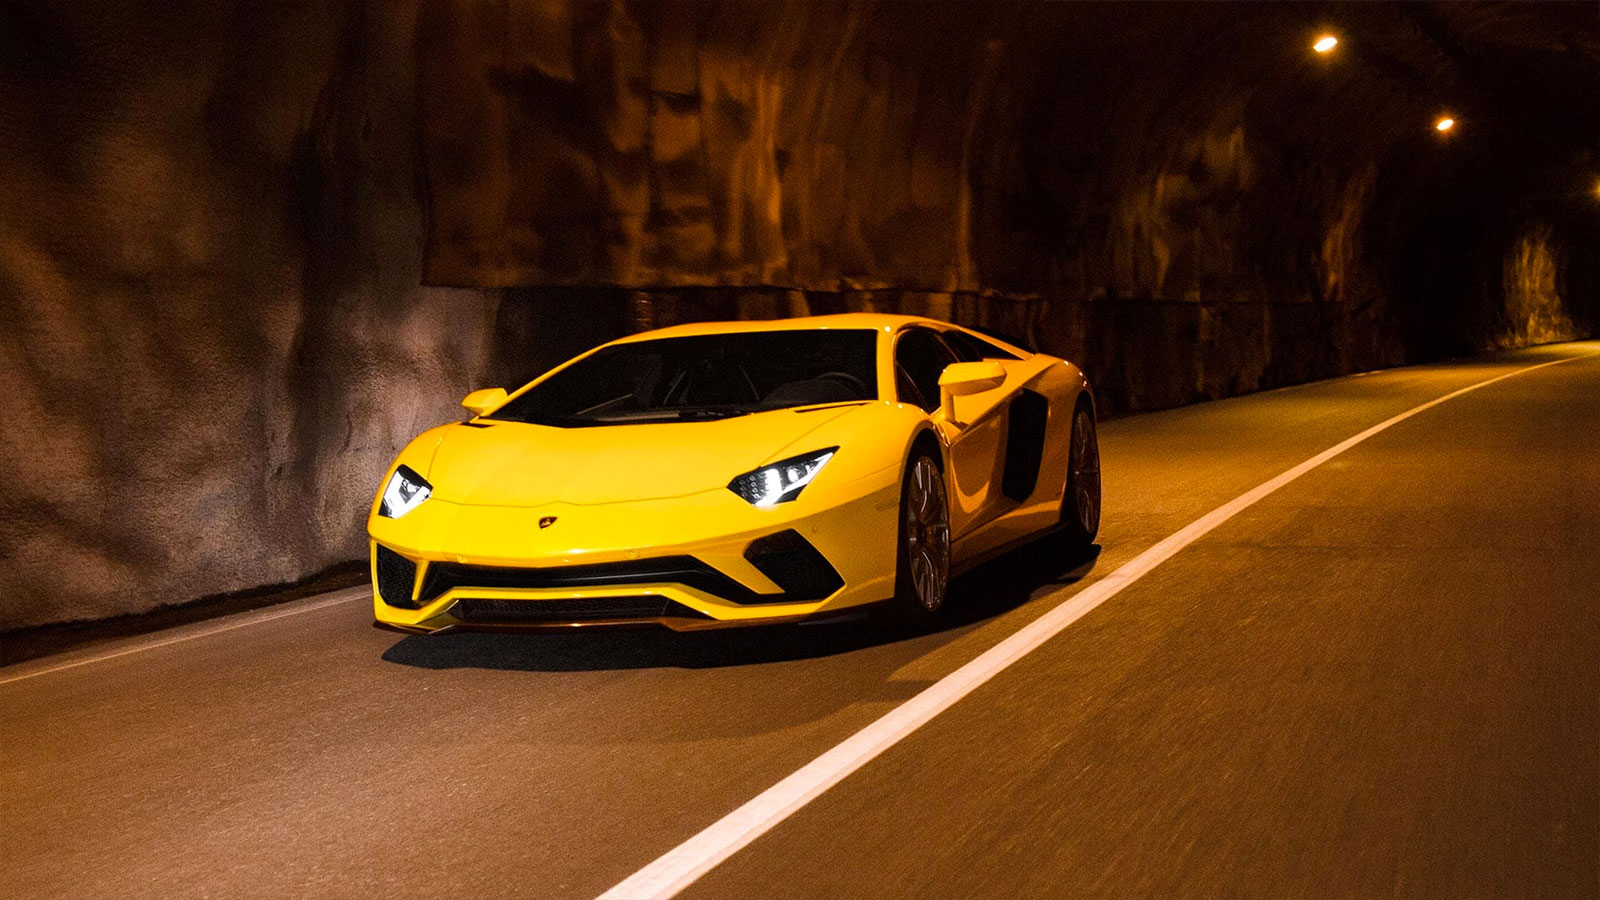 Lamborghini Aventador S Coupe - The Icon Reborn image 7